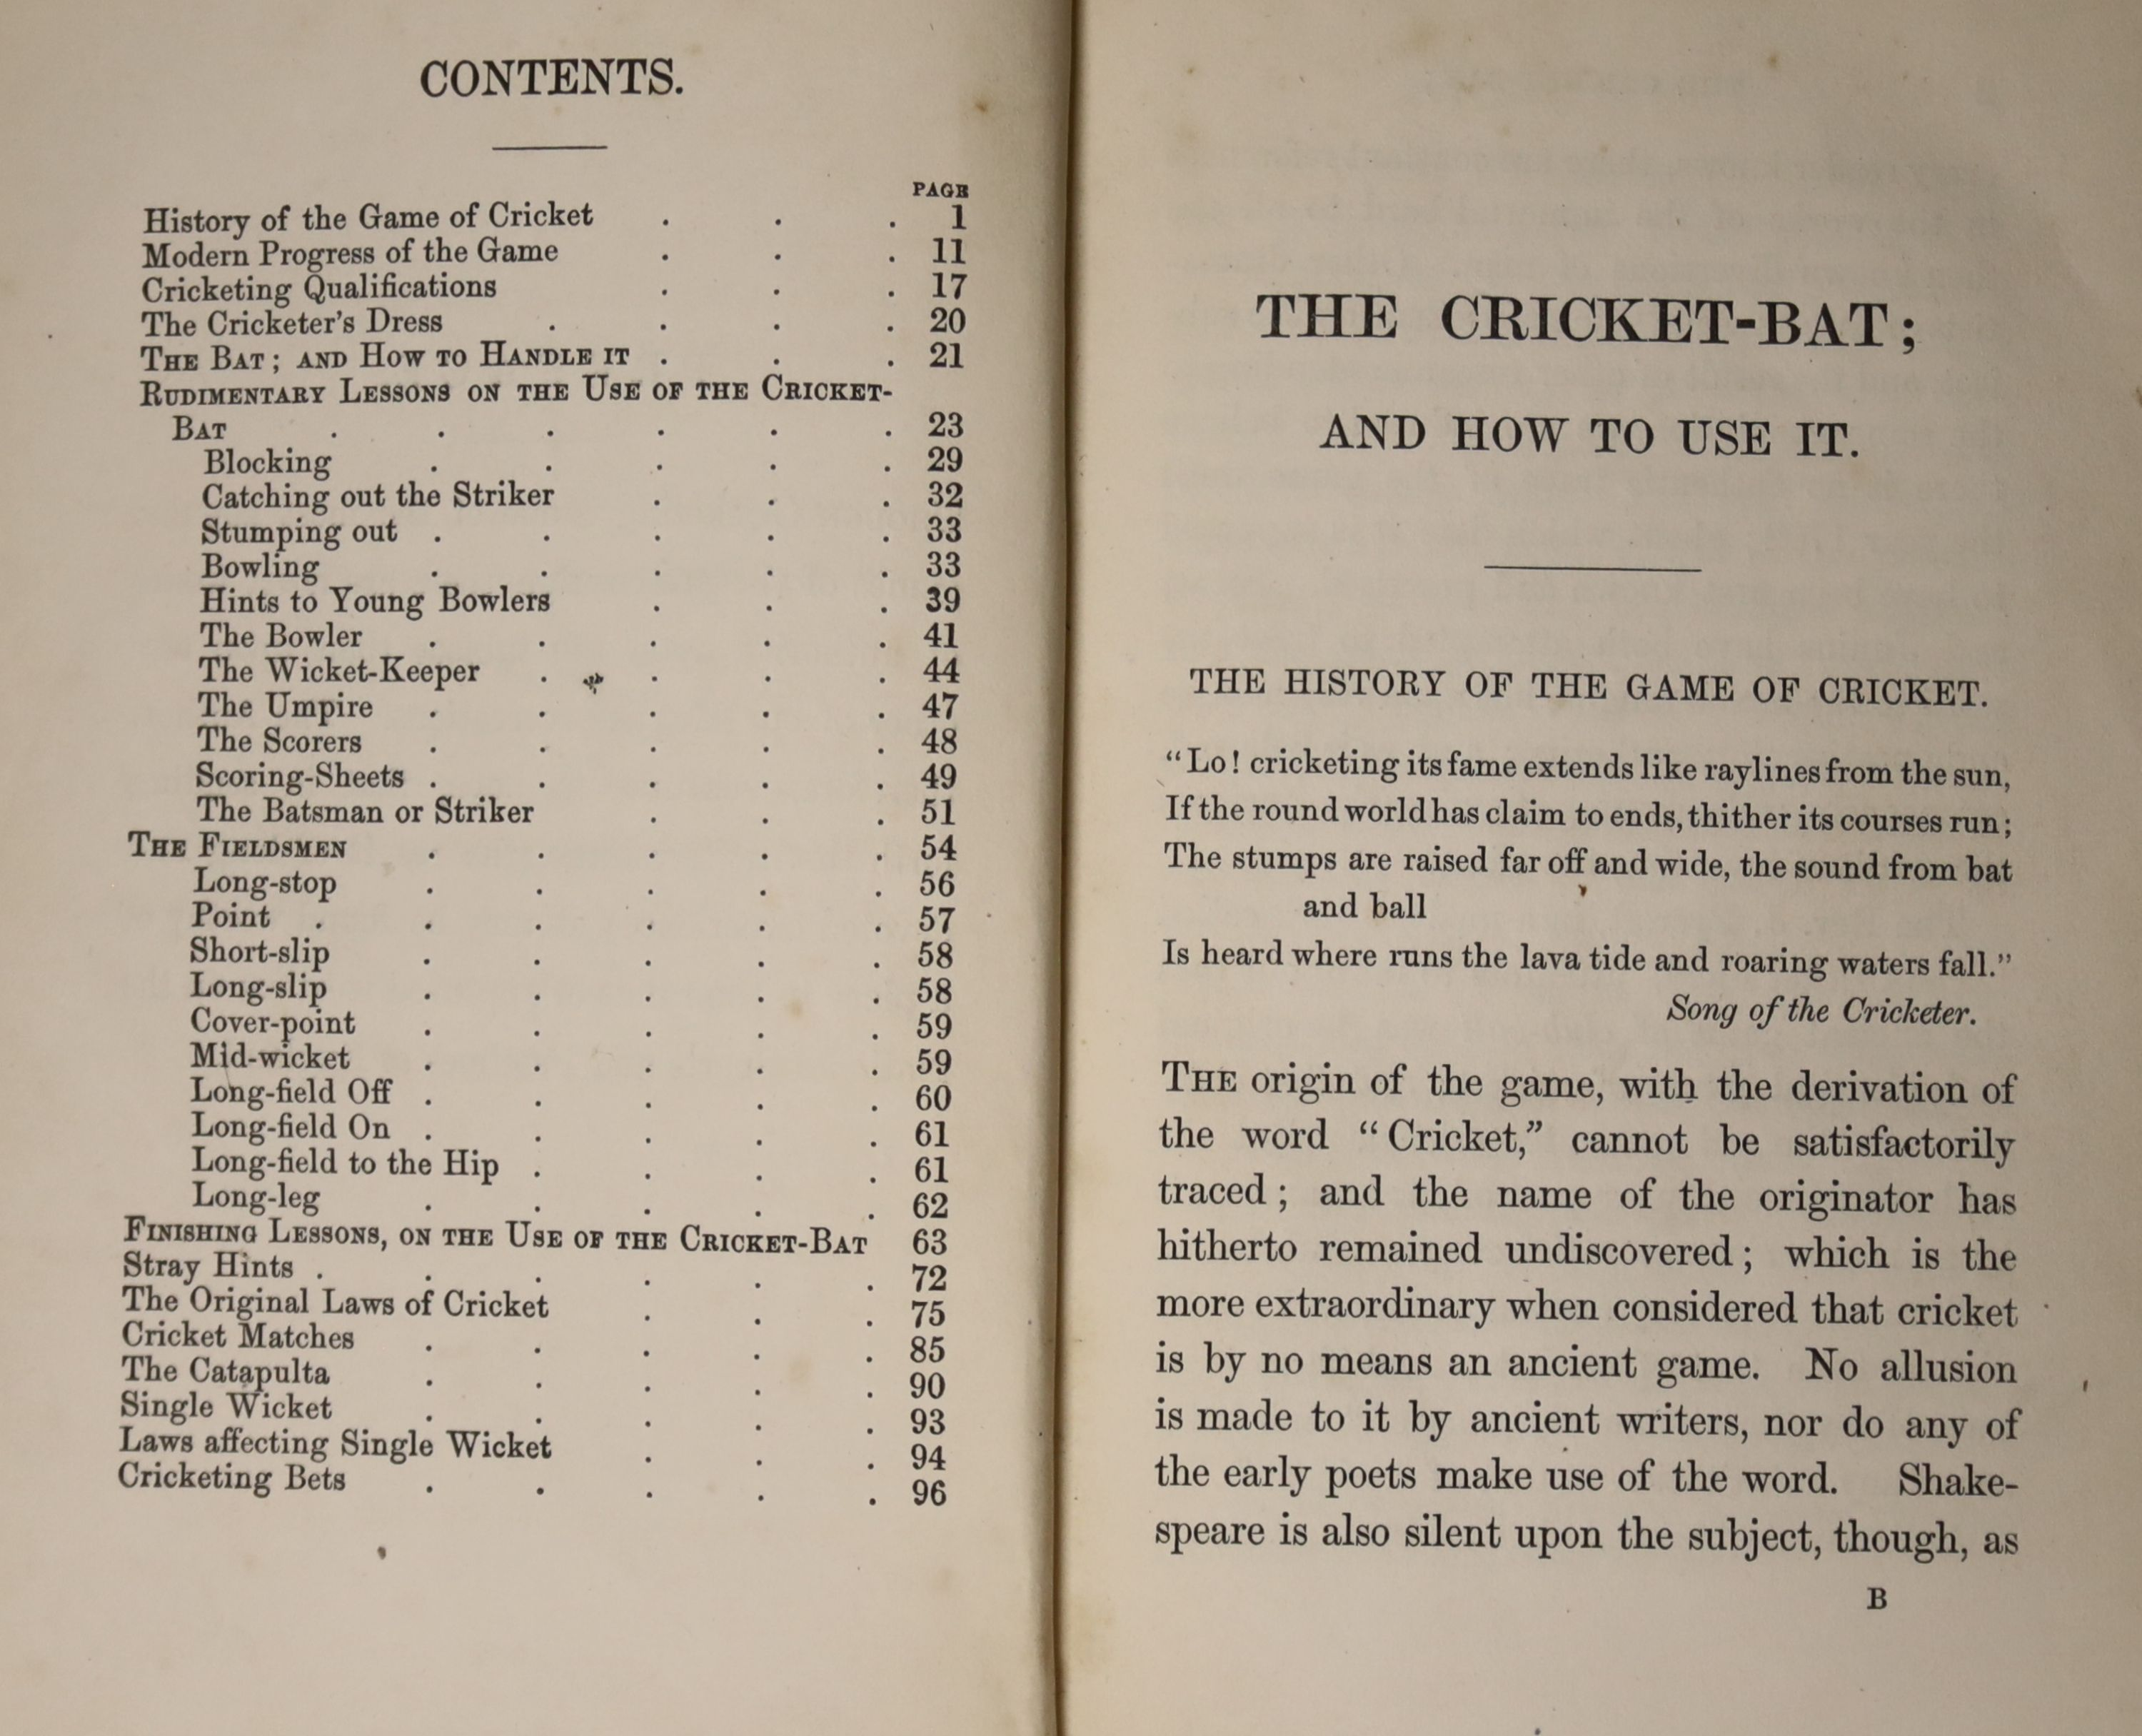 [Wanostrocht, Nicholas] - The Cricket-Bat; and How To Use It; a treatise on the game of cricket ..., - Image 4 of 5